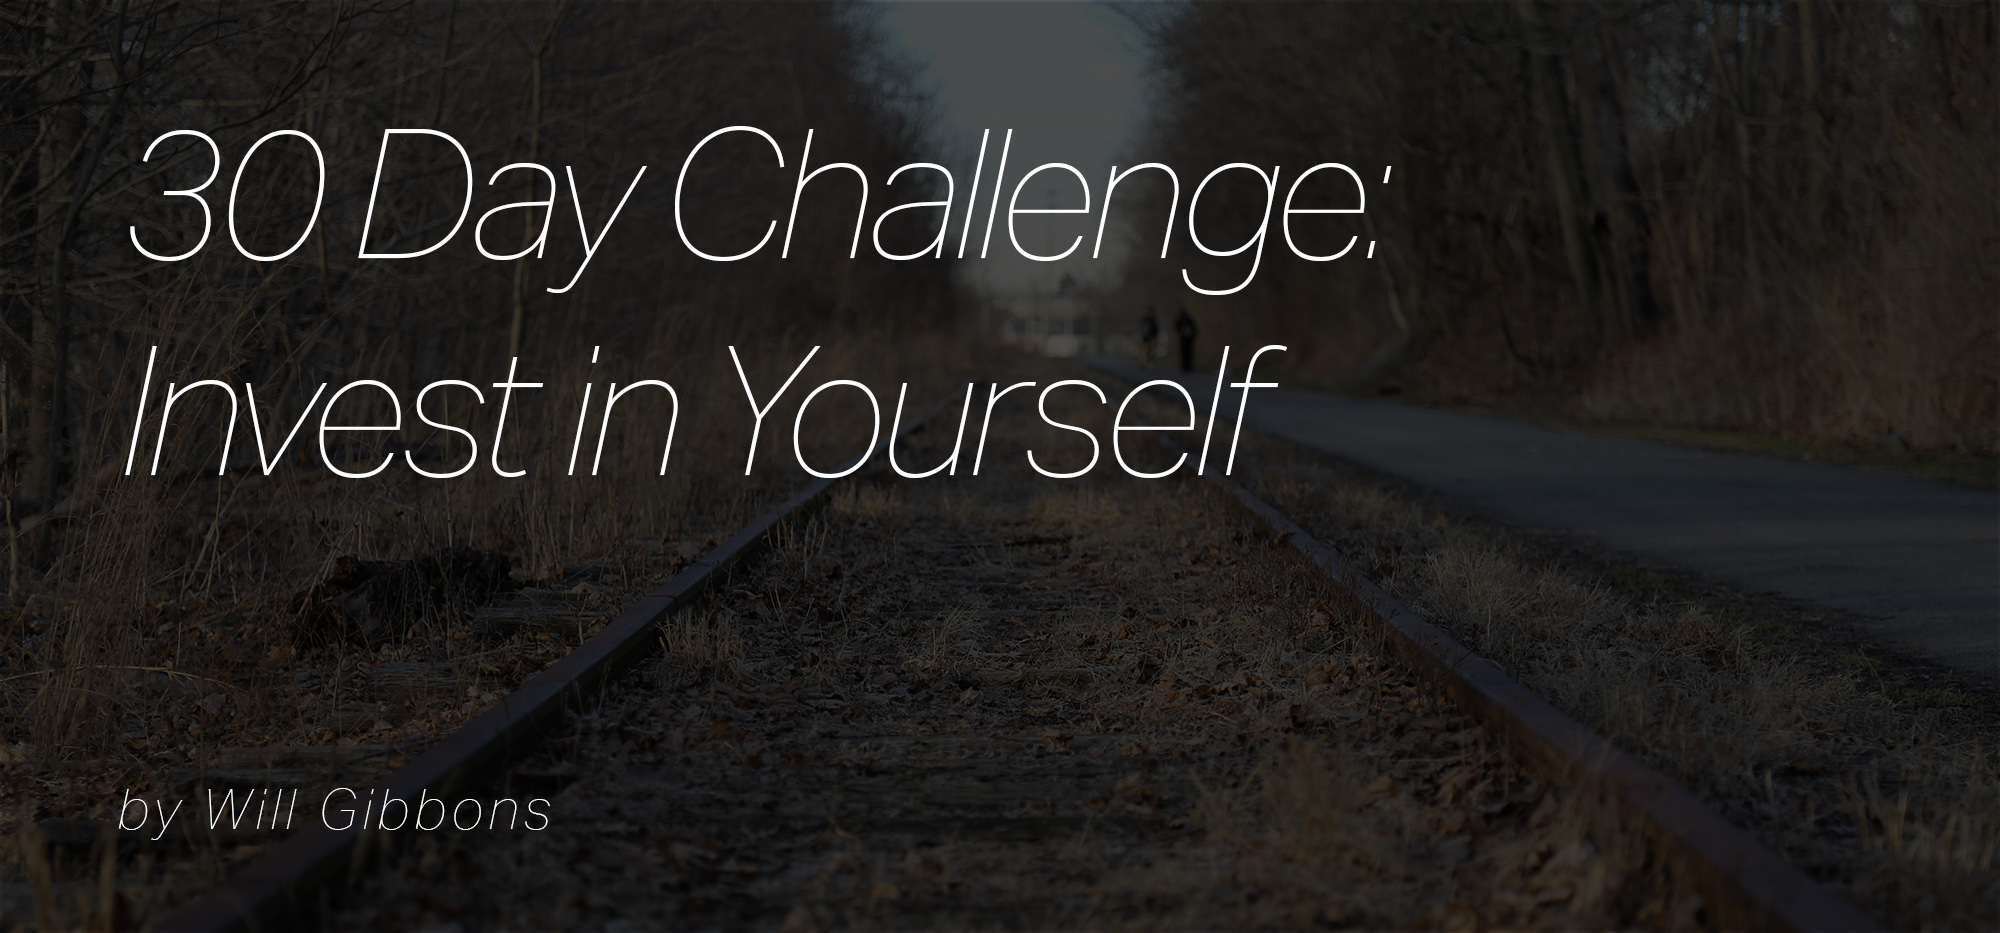 30 day challenge Will Gibbons Design